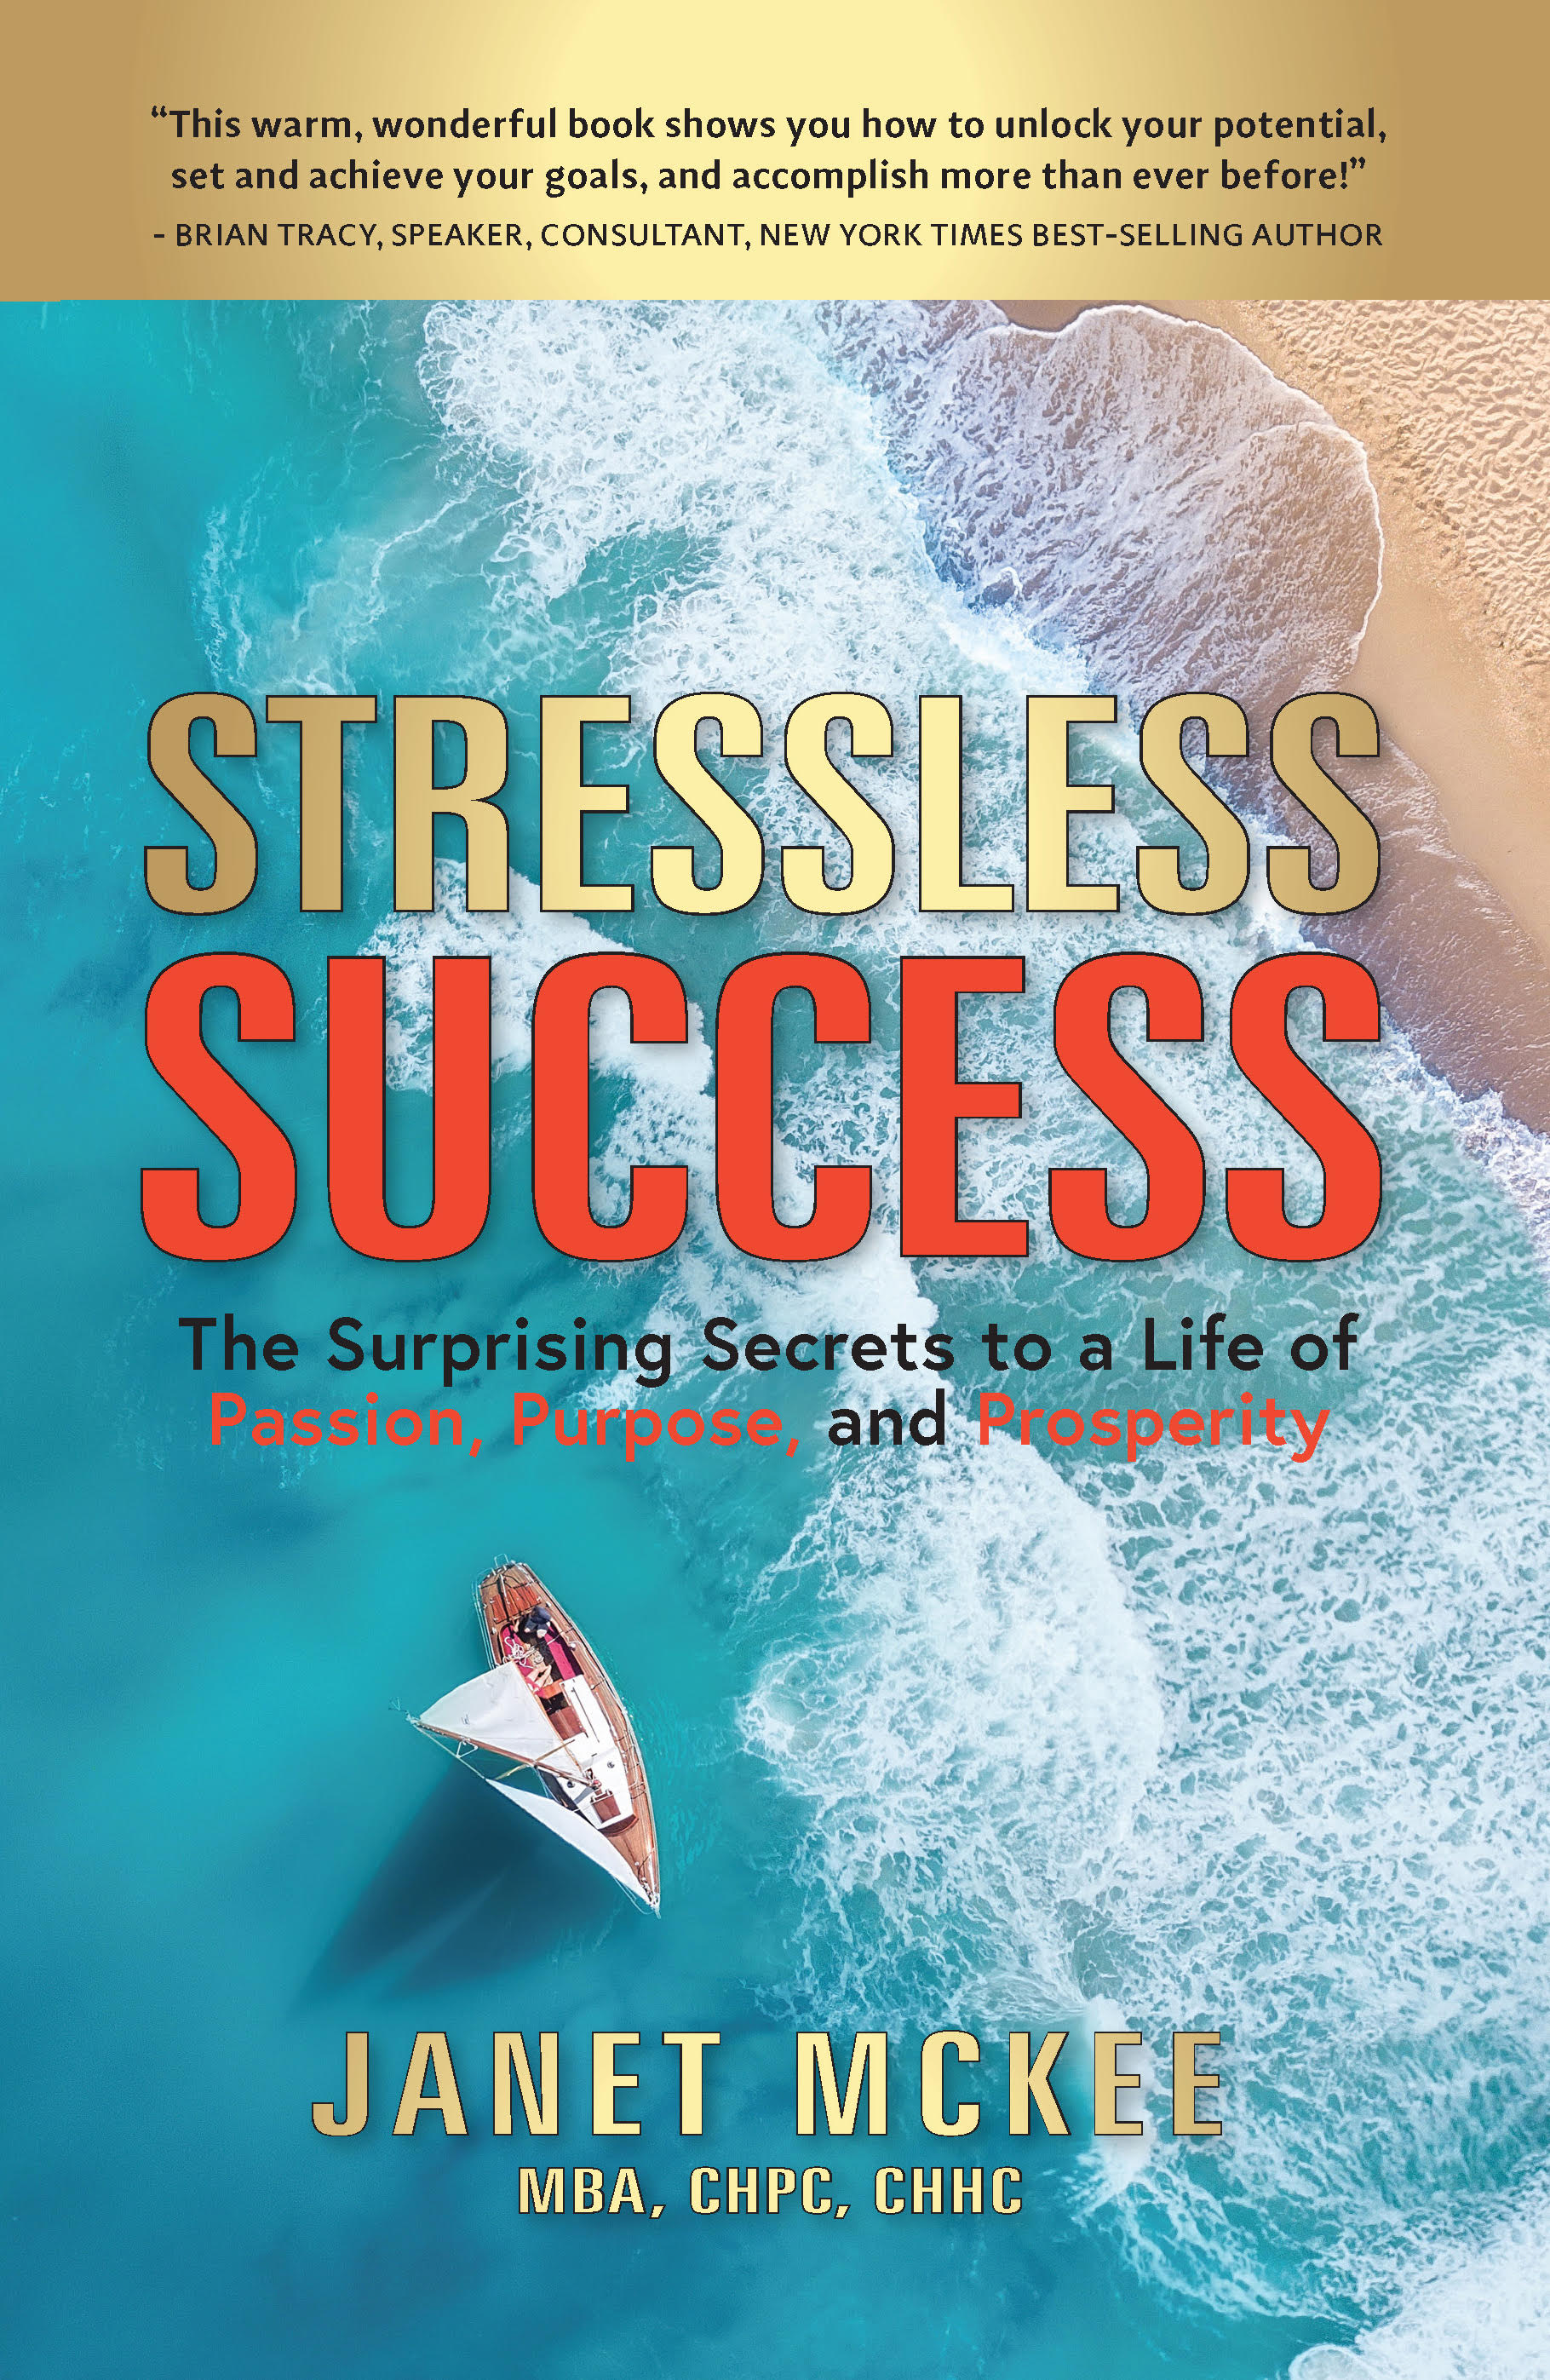 Book Cover: Stressless Success